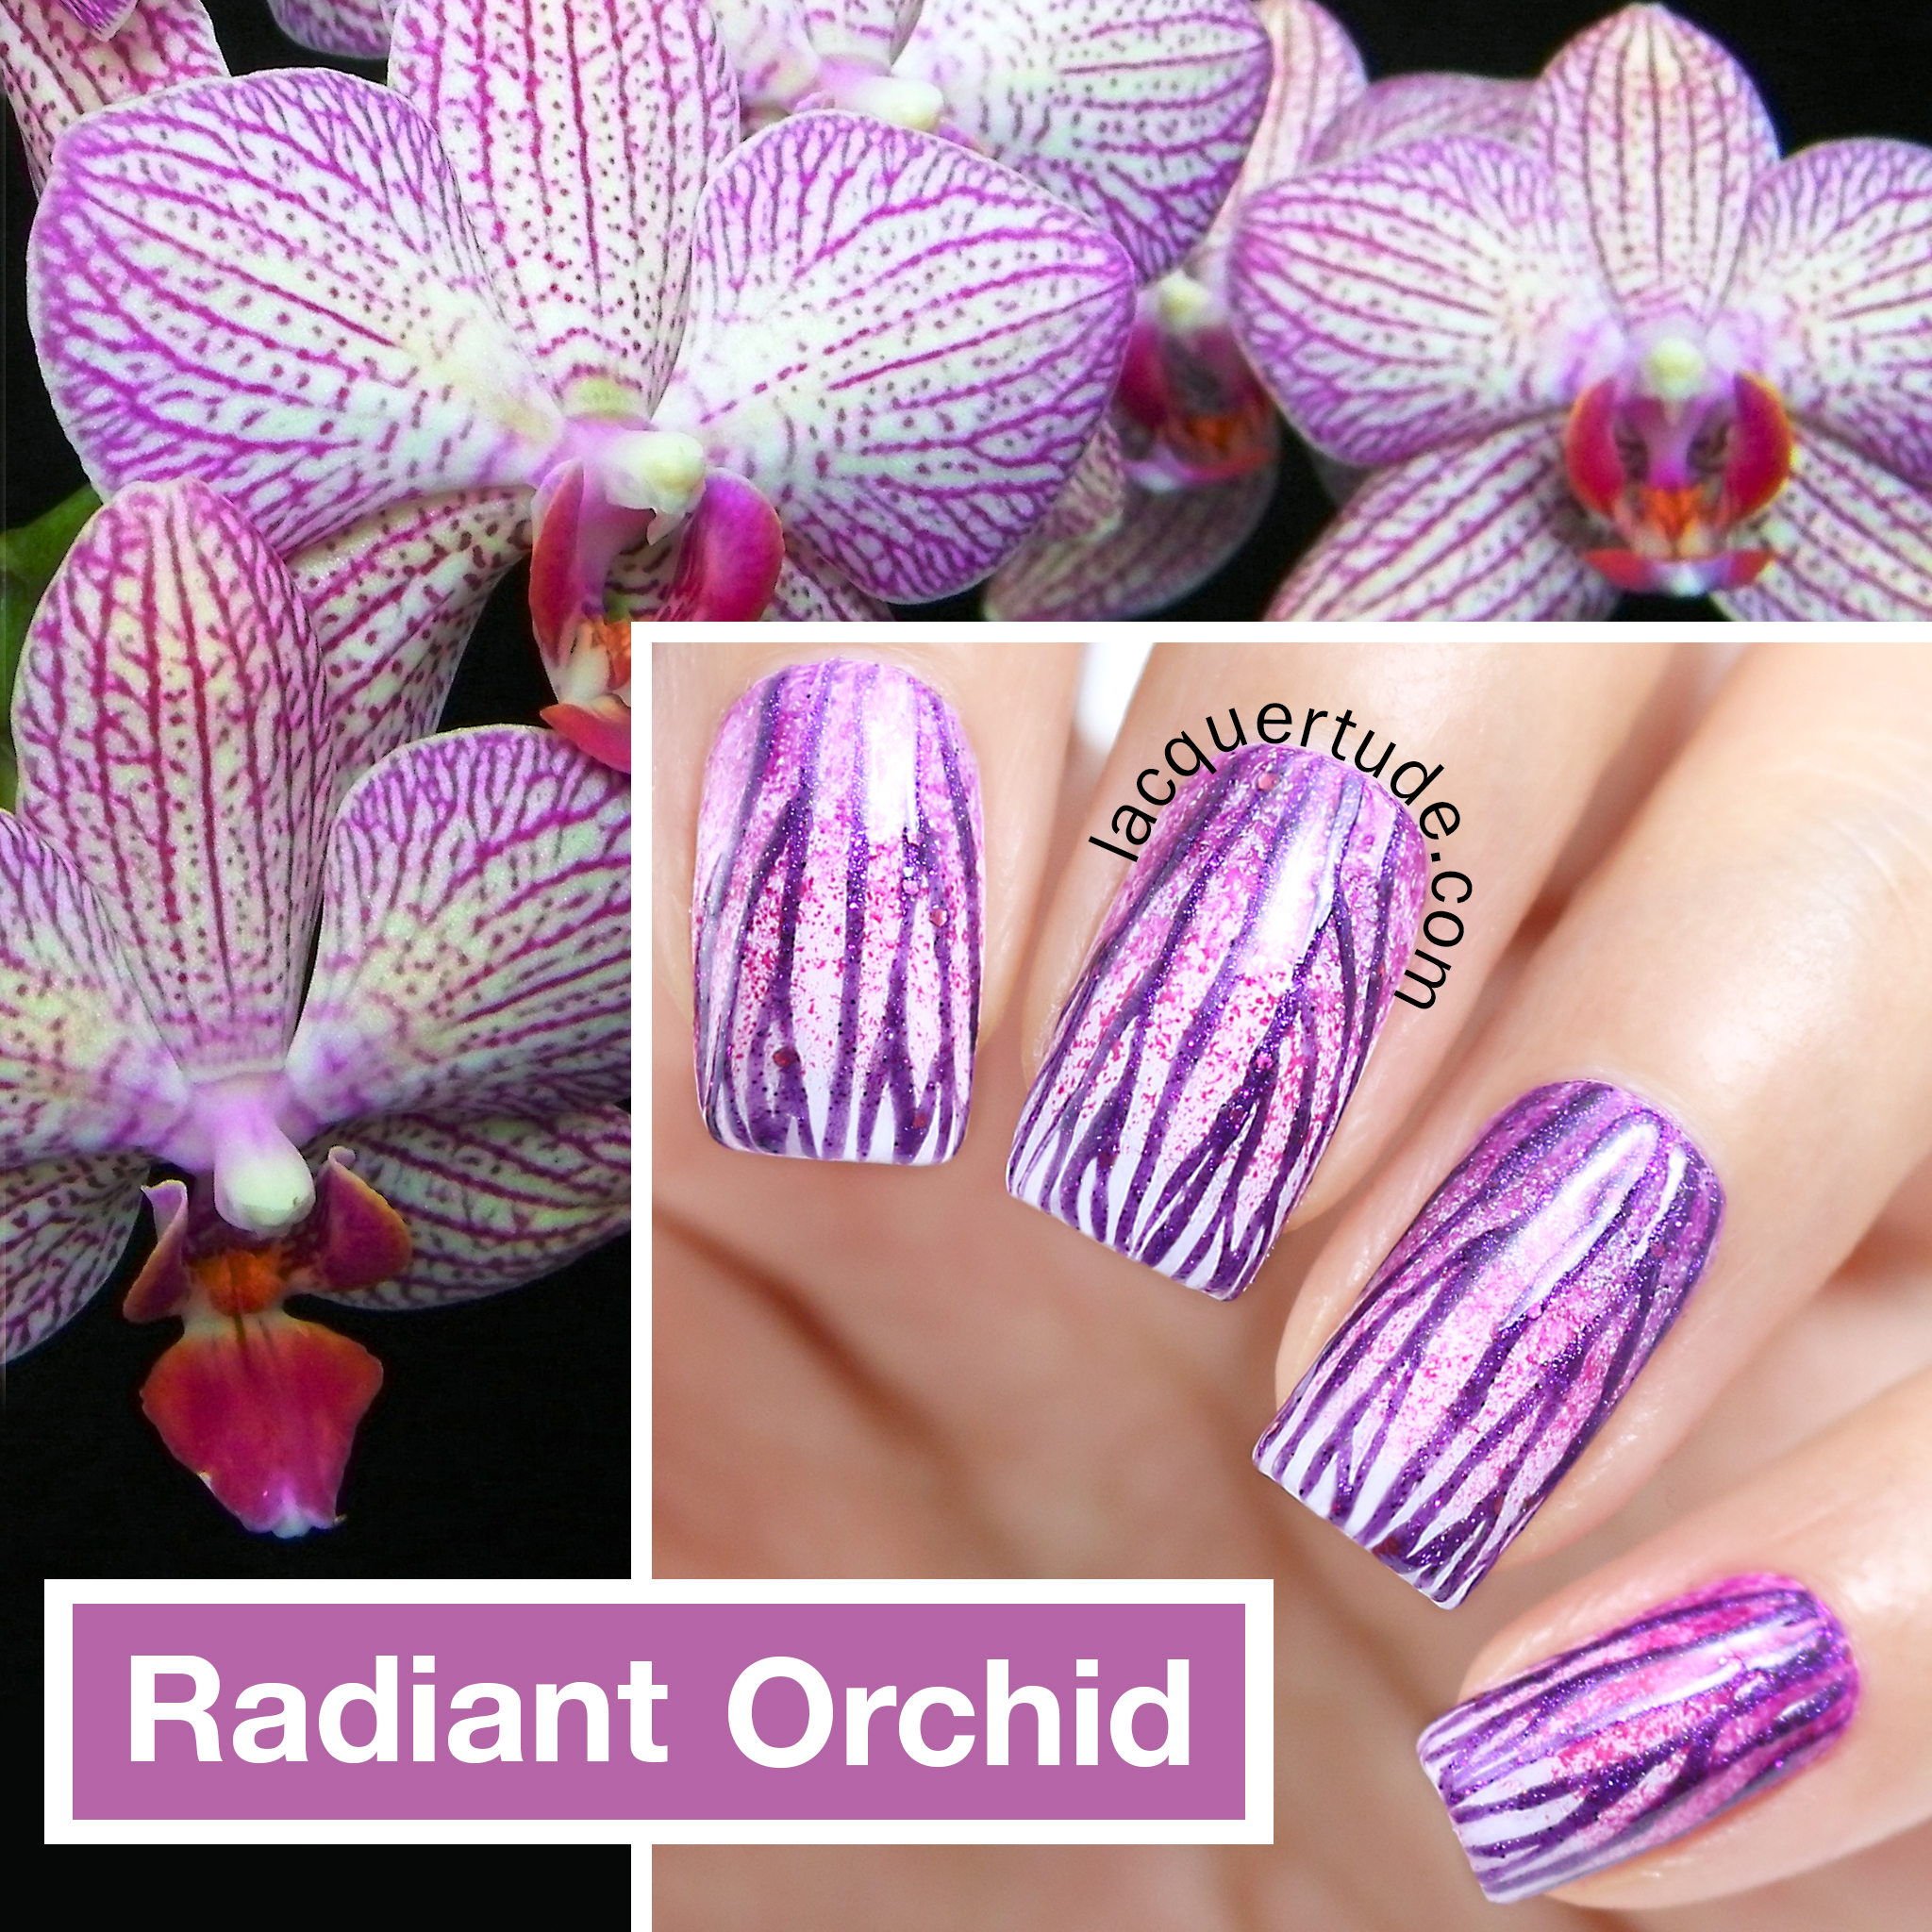 Lacquertude-Radiant-Orchid-Nail-Art-Collage